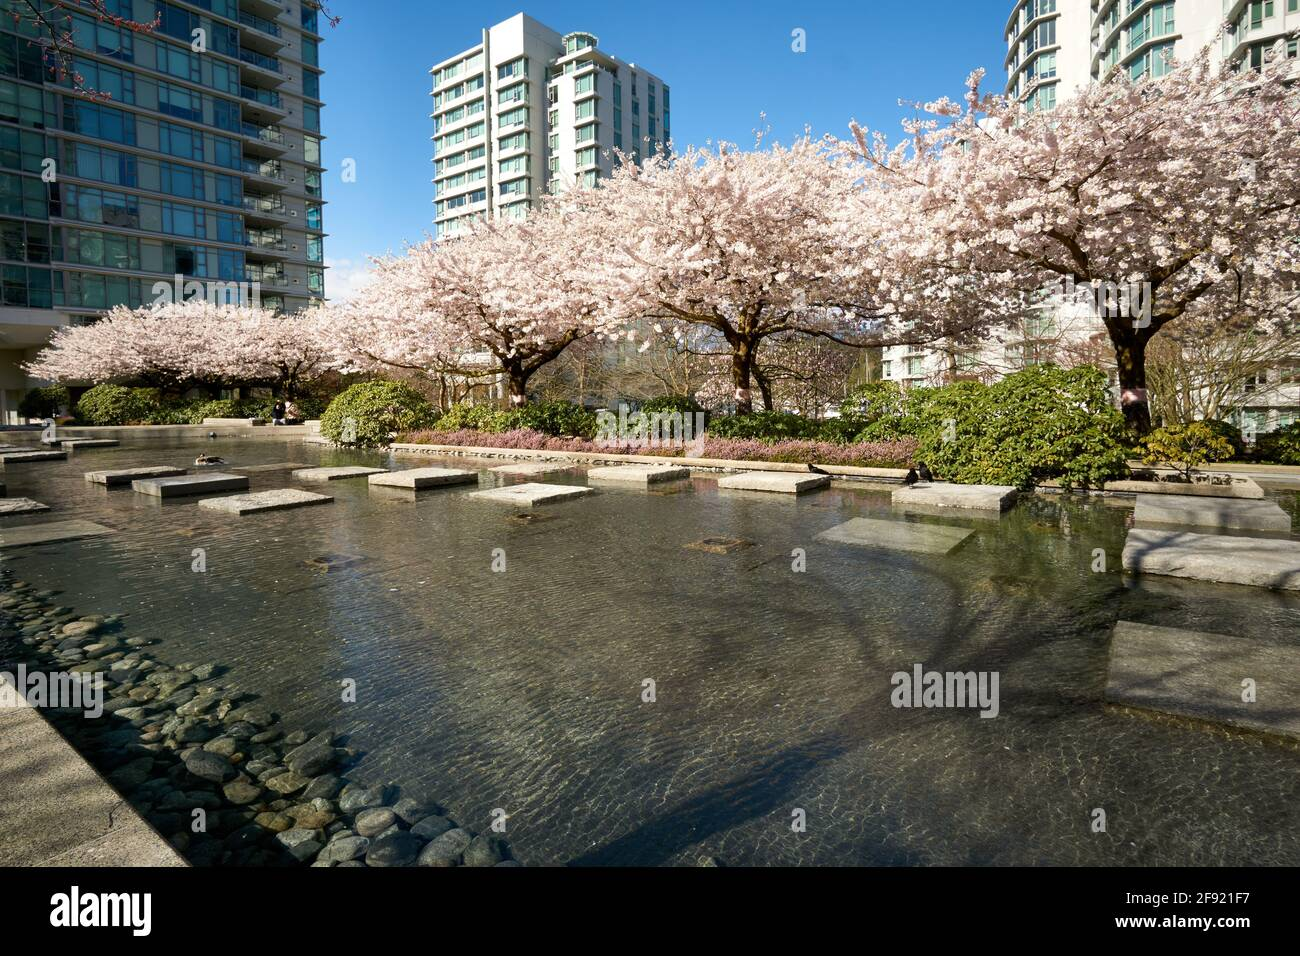 blossoming-ornamental-cherry-trees-in-sp